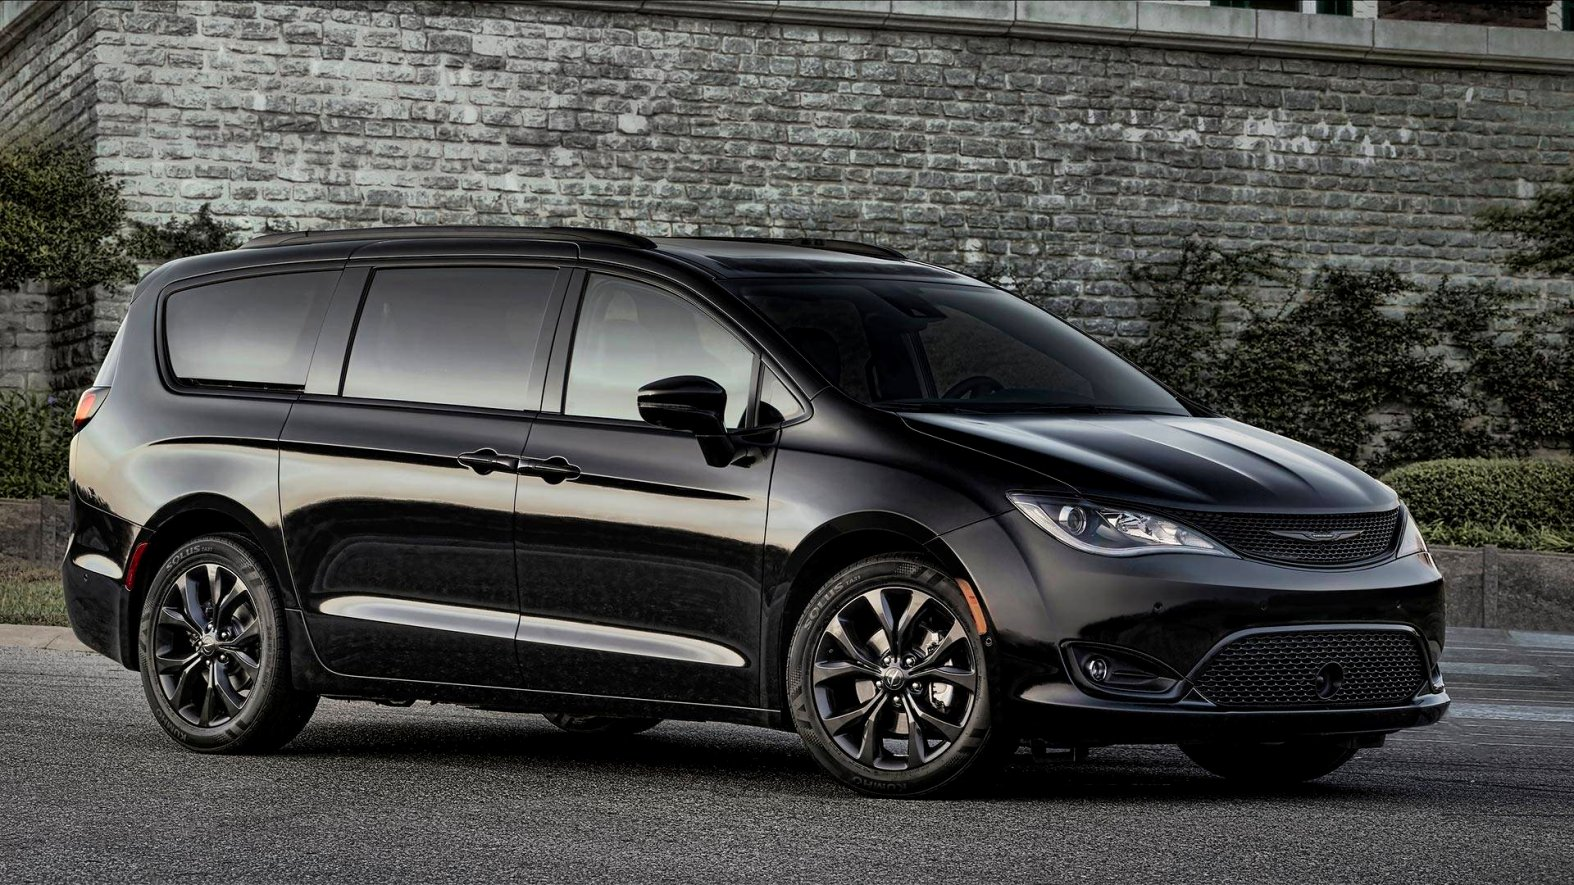 dodge pacifica 2020 Price and Review